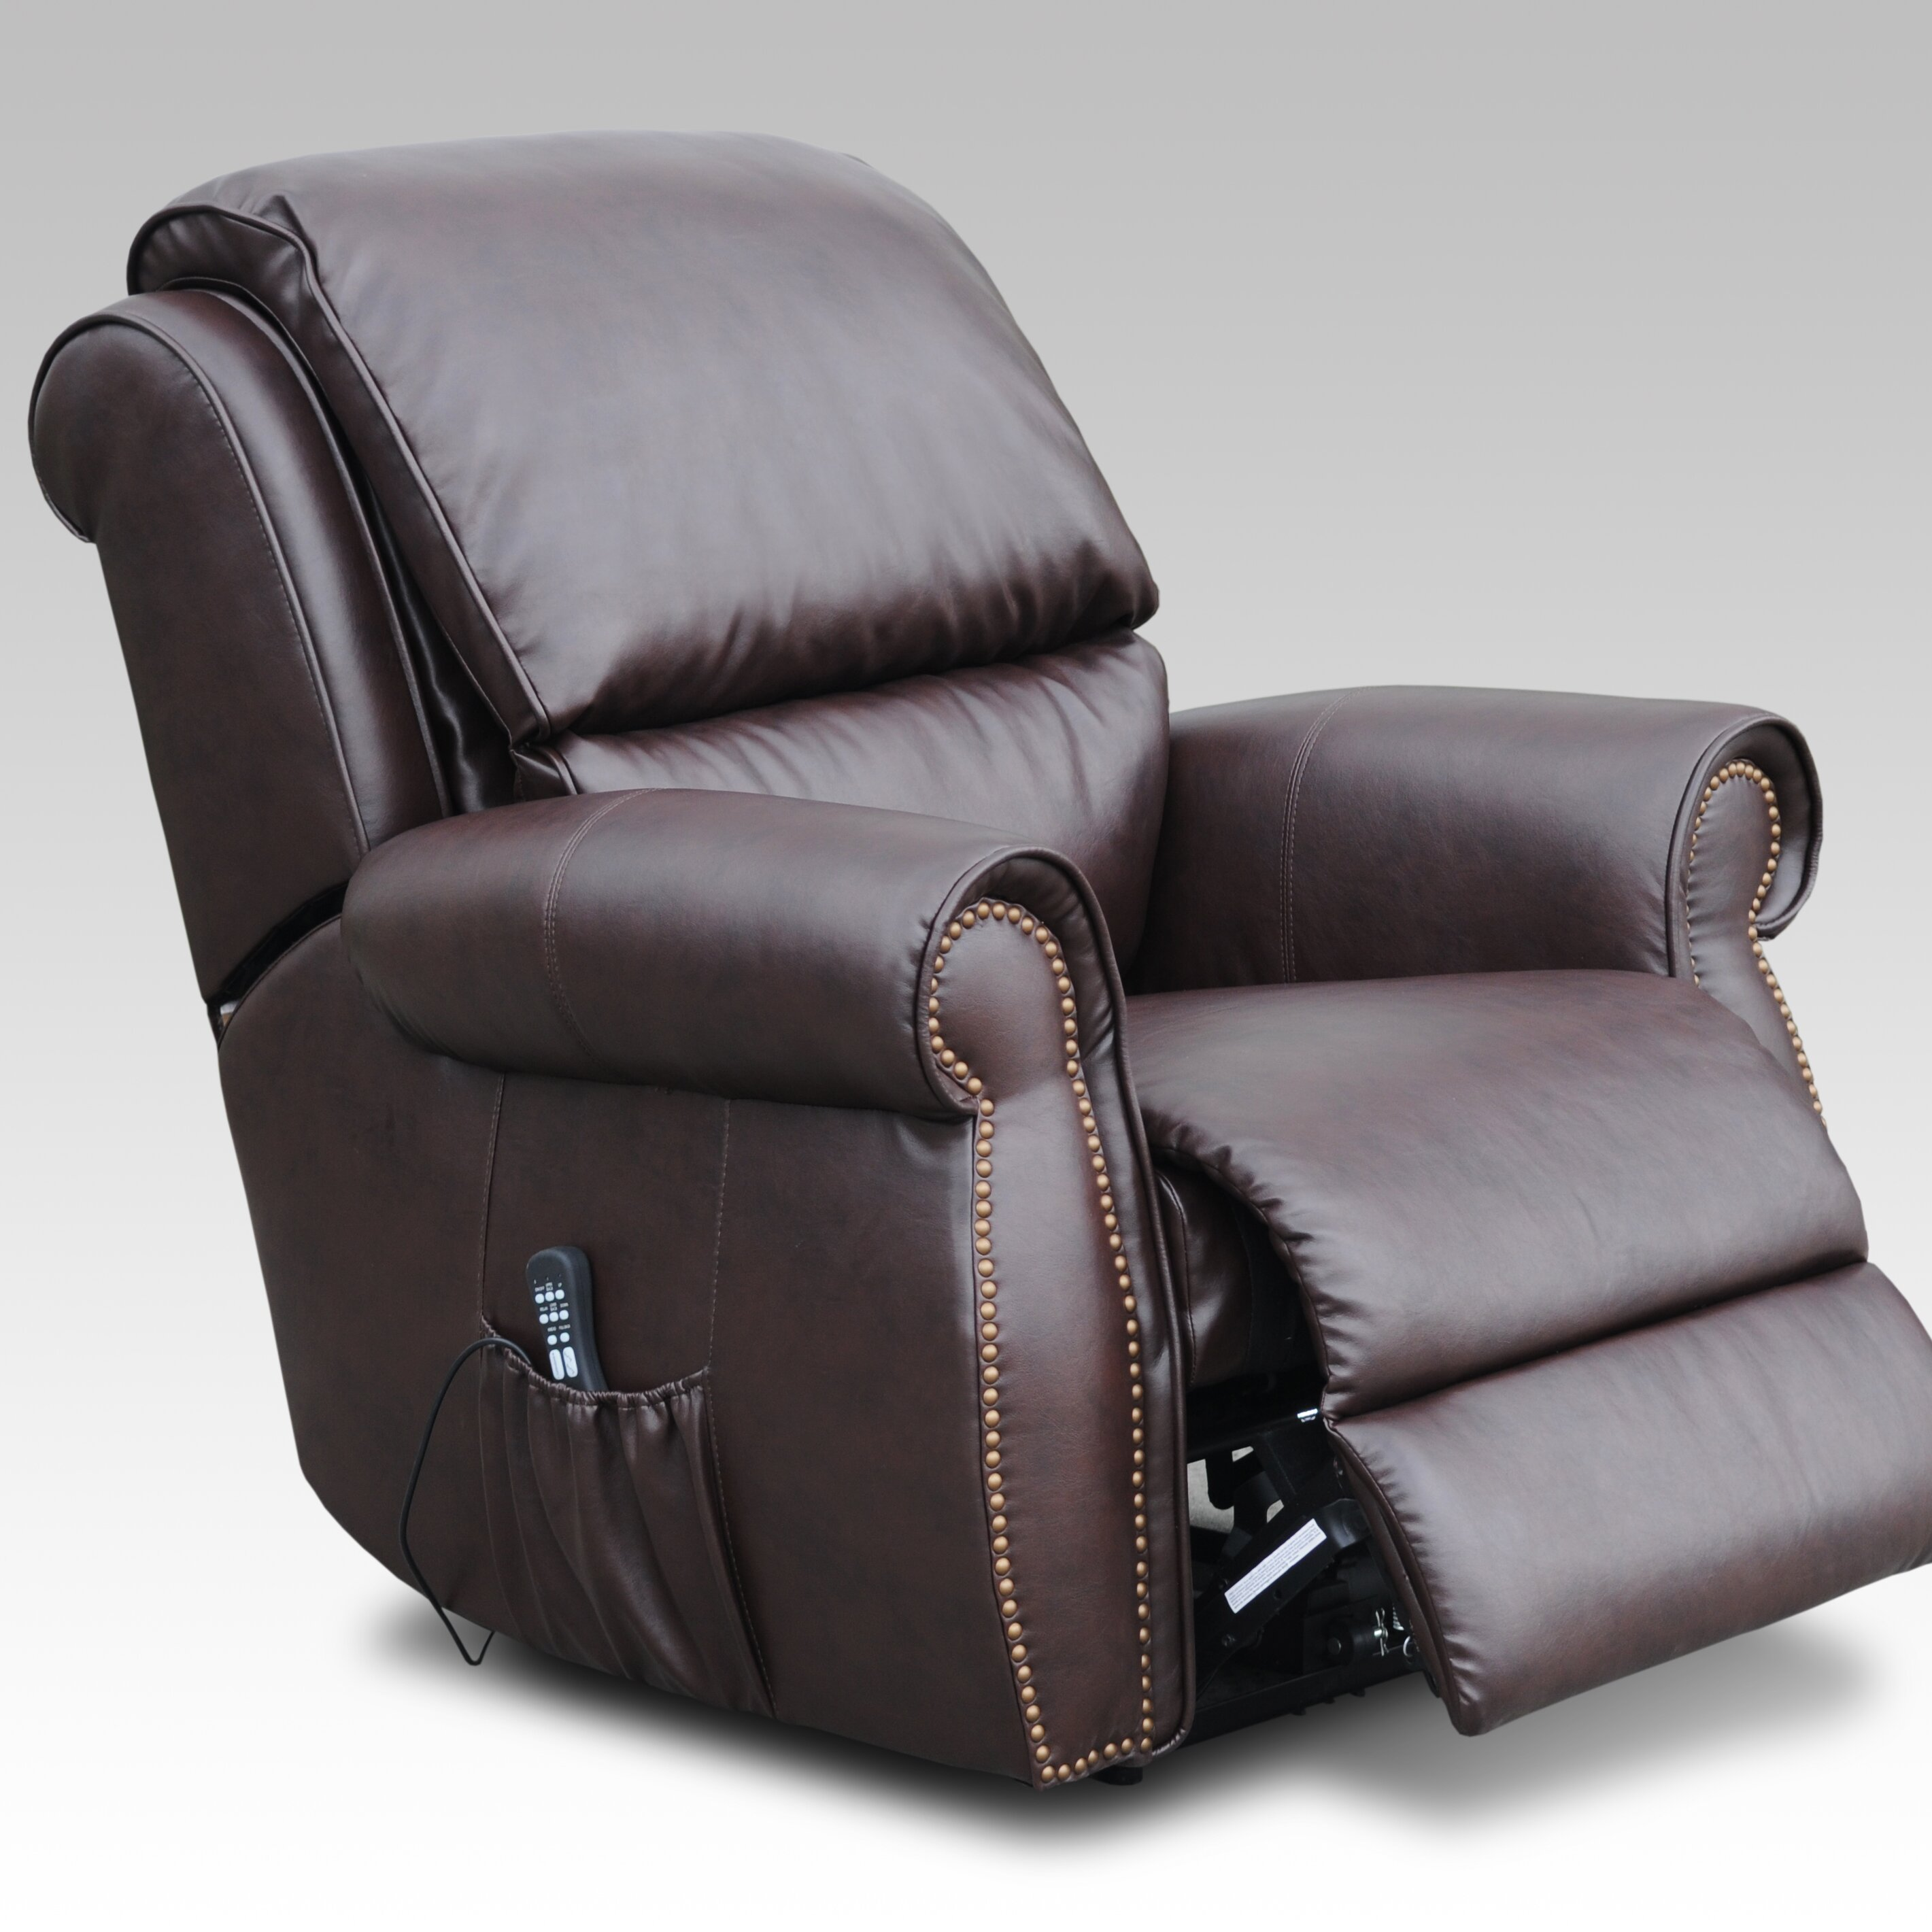 Electric tv recliner massage chair black with a footstool www vidaxl -  Hd Recliner Massage Chairs